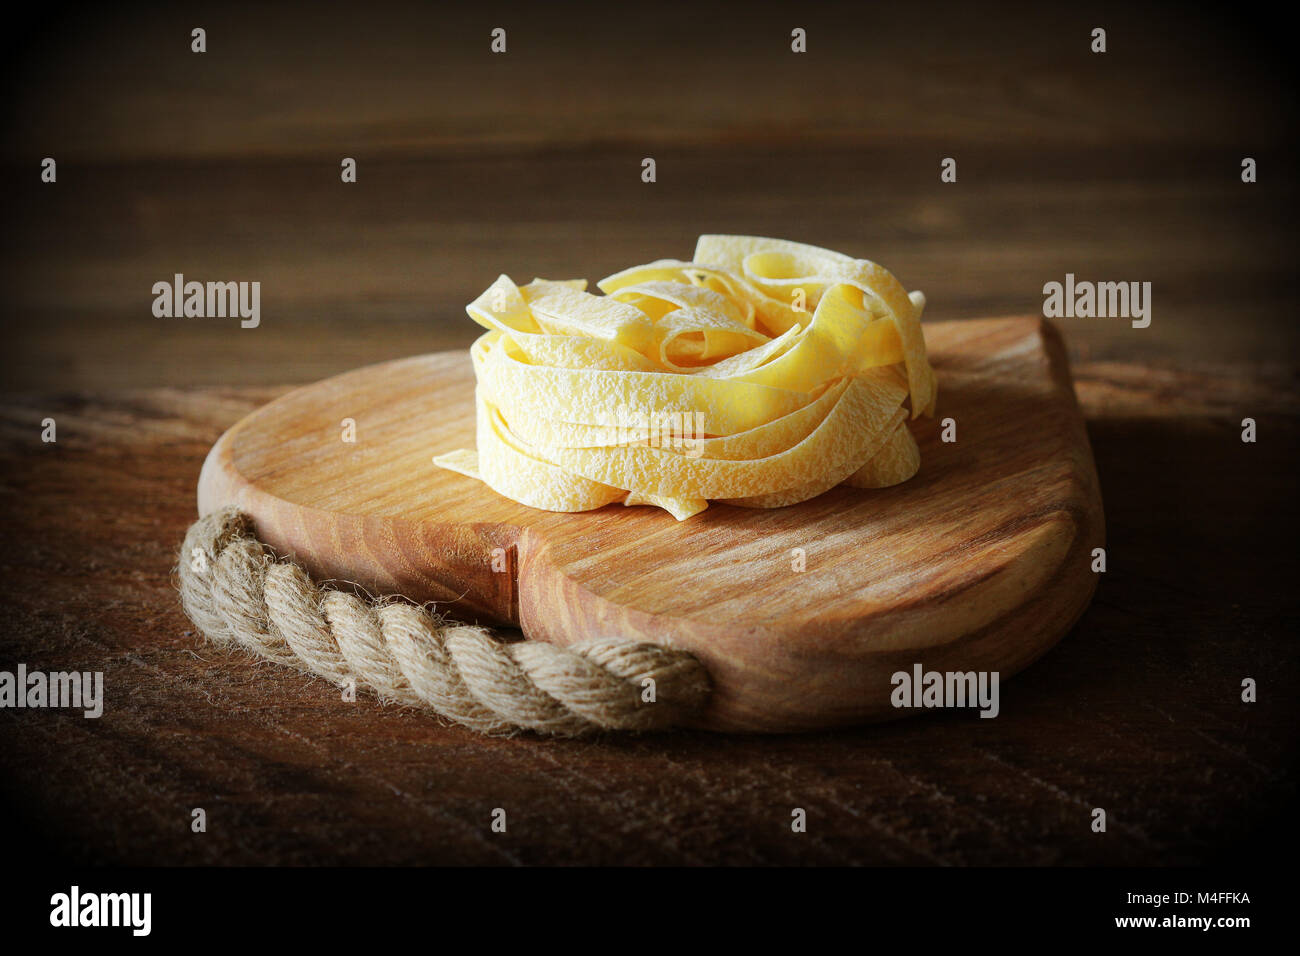 Nest of pasta tagliatelle on wooden cutting board aon rustic background. Selective focus - Stock Image